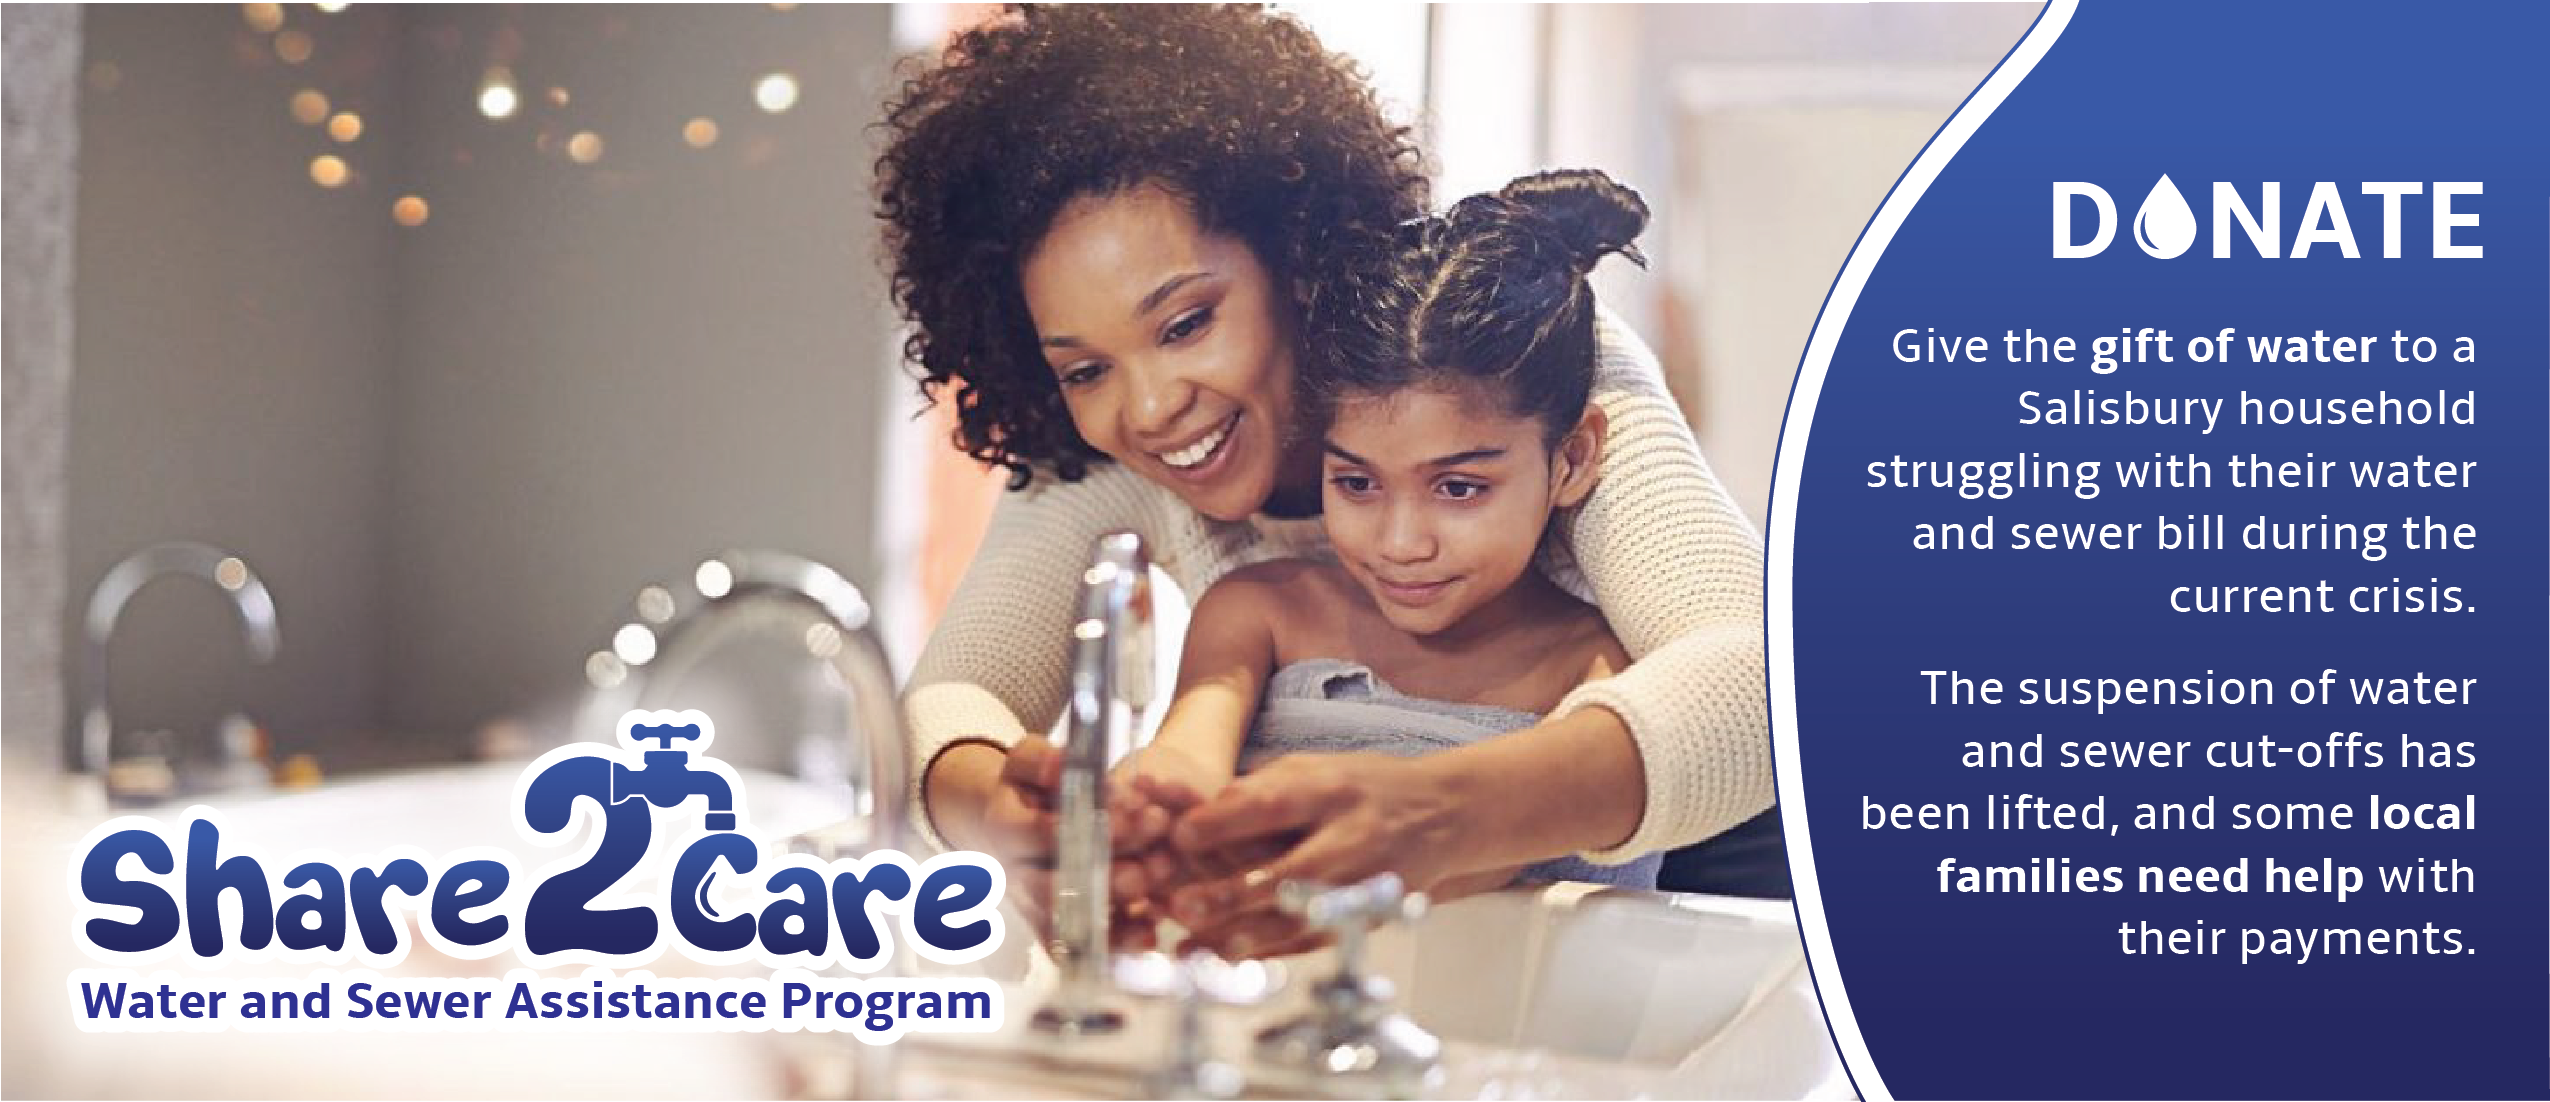 Share2Care program allows residents to donate money towards water and sewer funds to benefit local families in need